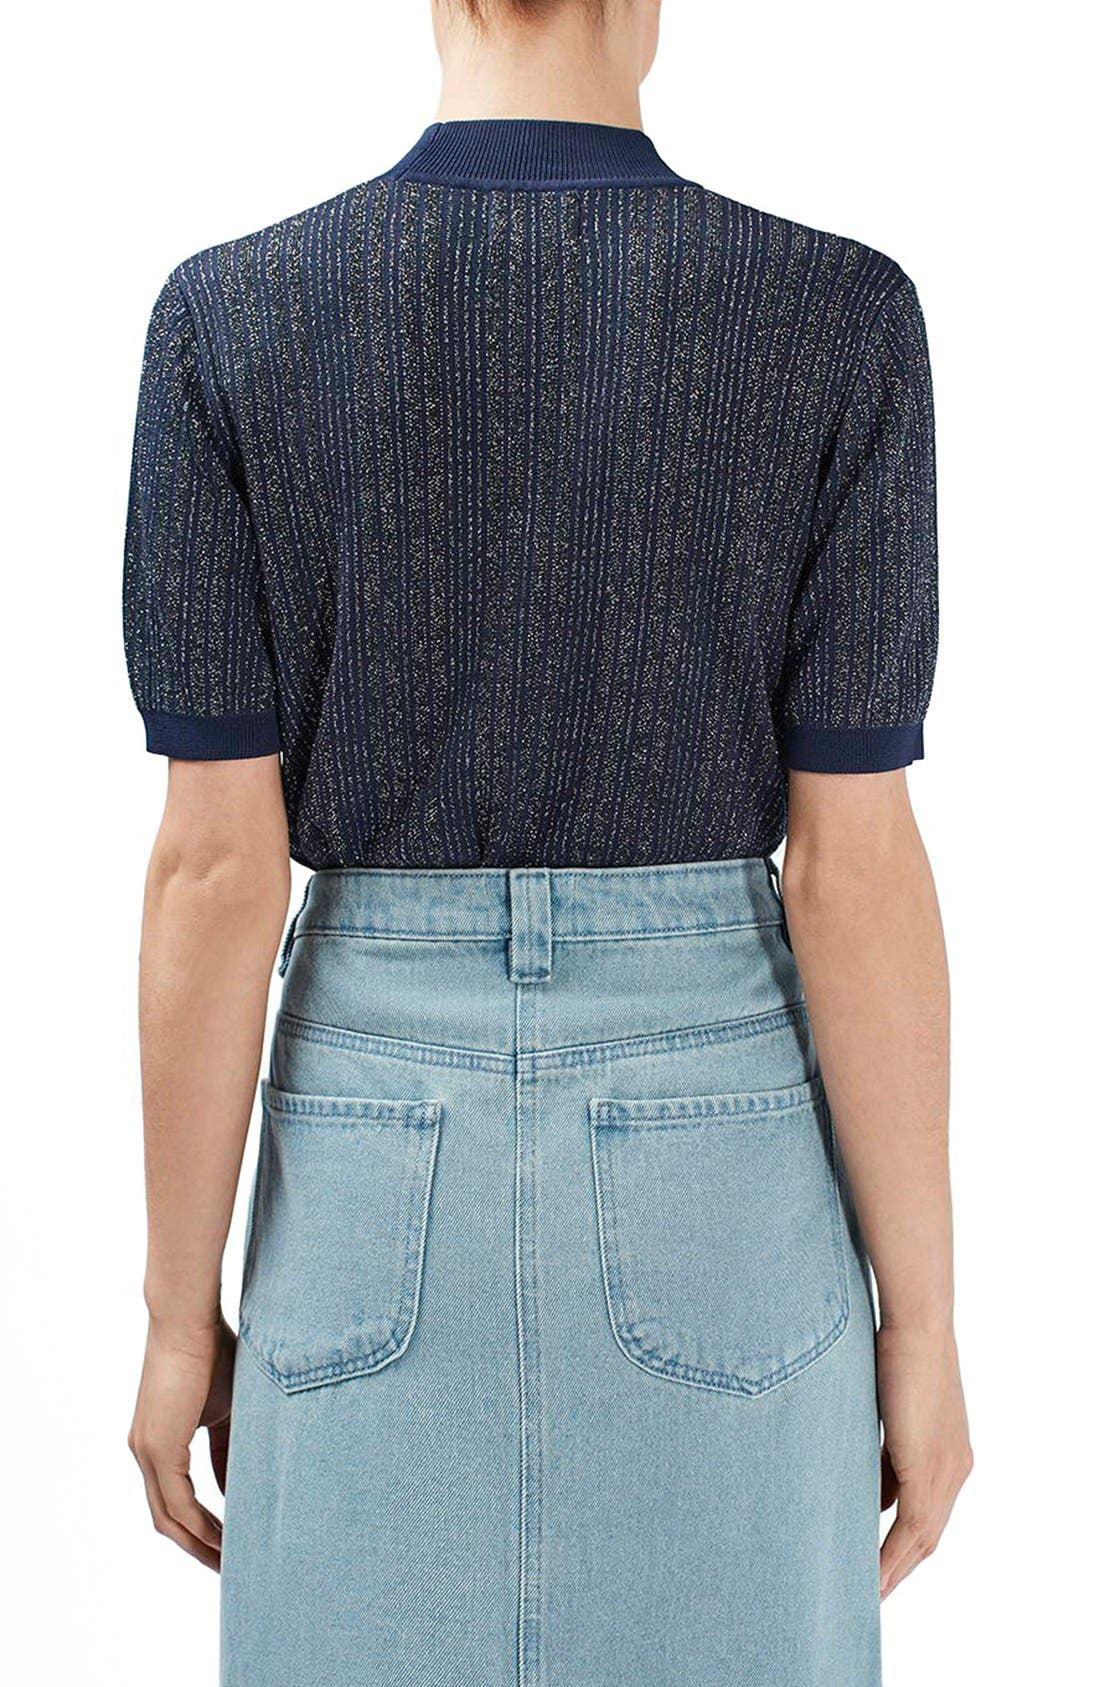 Alternate Image 3  - Topshop Unique 'Lamont' Short Sleeve Metallic Stripe Sweater